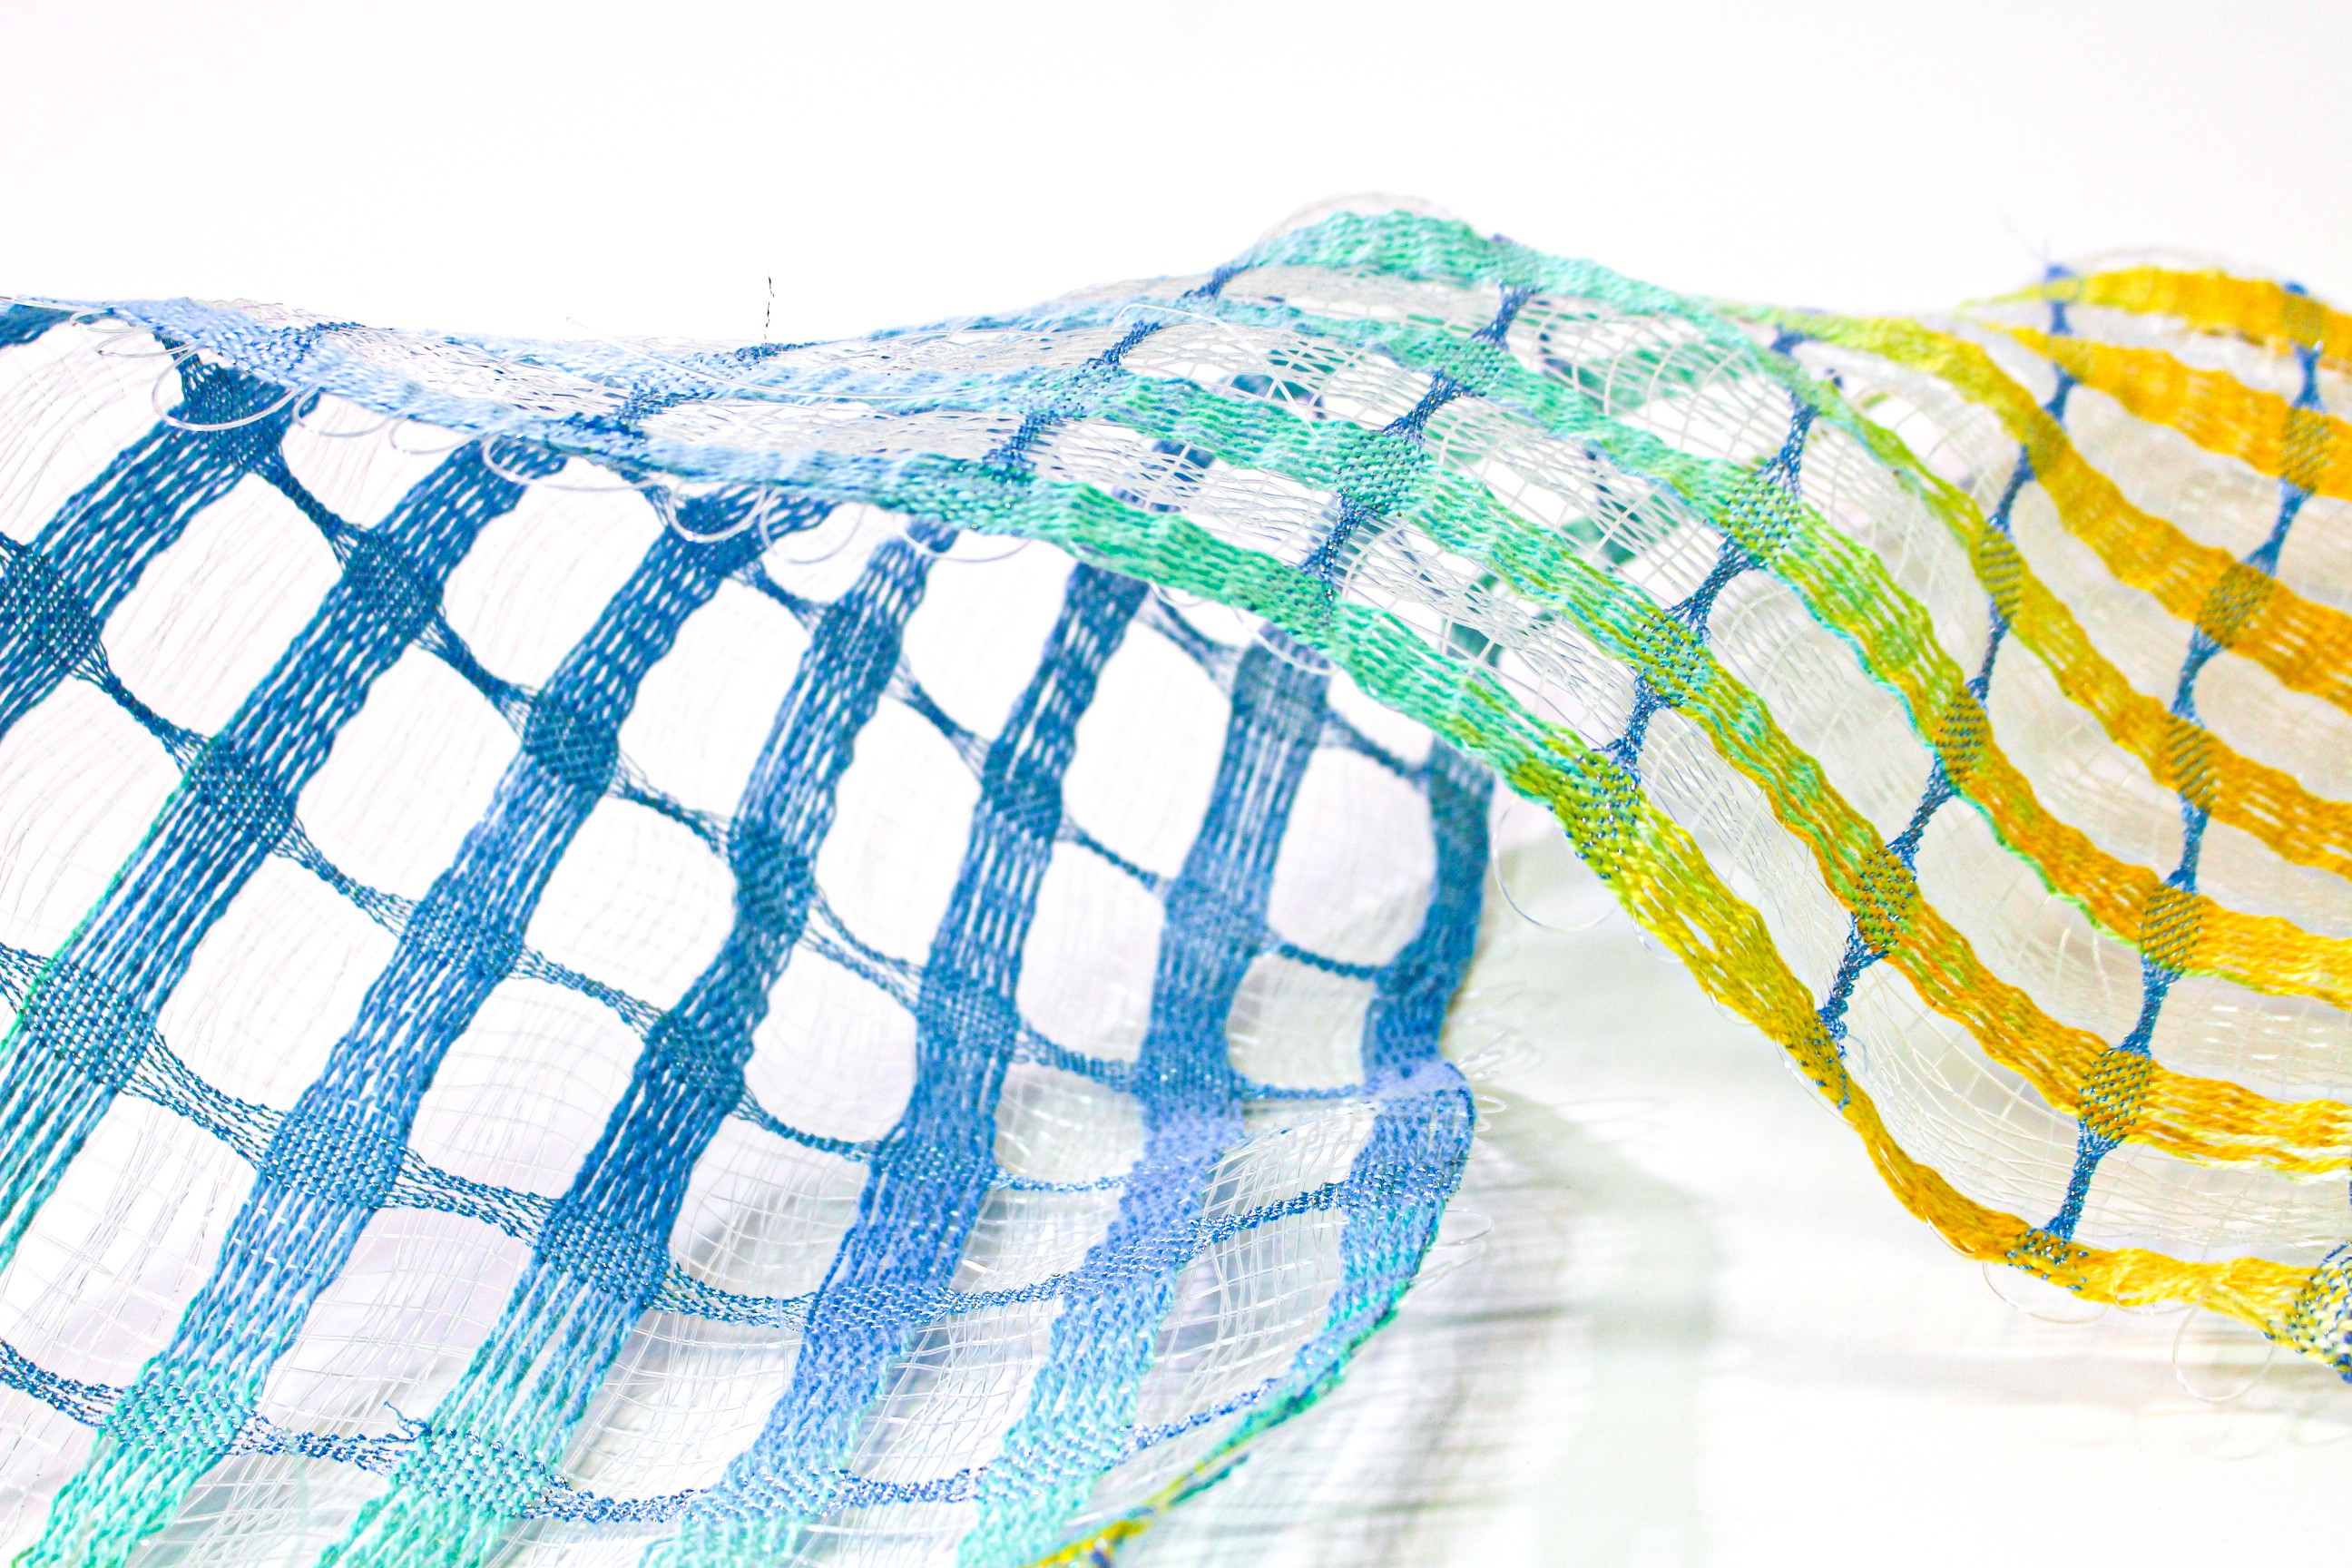 Woven fabric lies horizontally across the plane. The fabric is broken into bands that have a color gradation of blue, green, and golden yellow. In between these sections is transparent fishing line that softly reflects light.